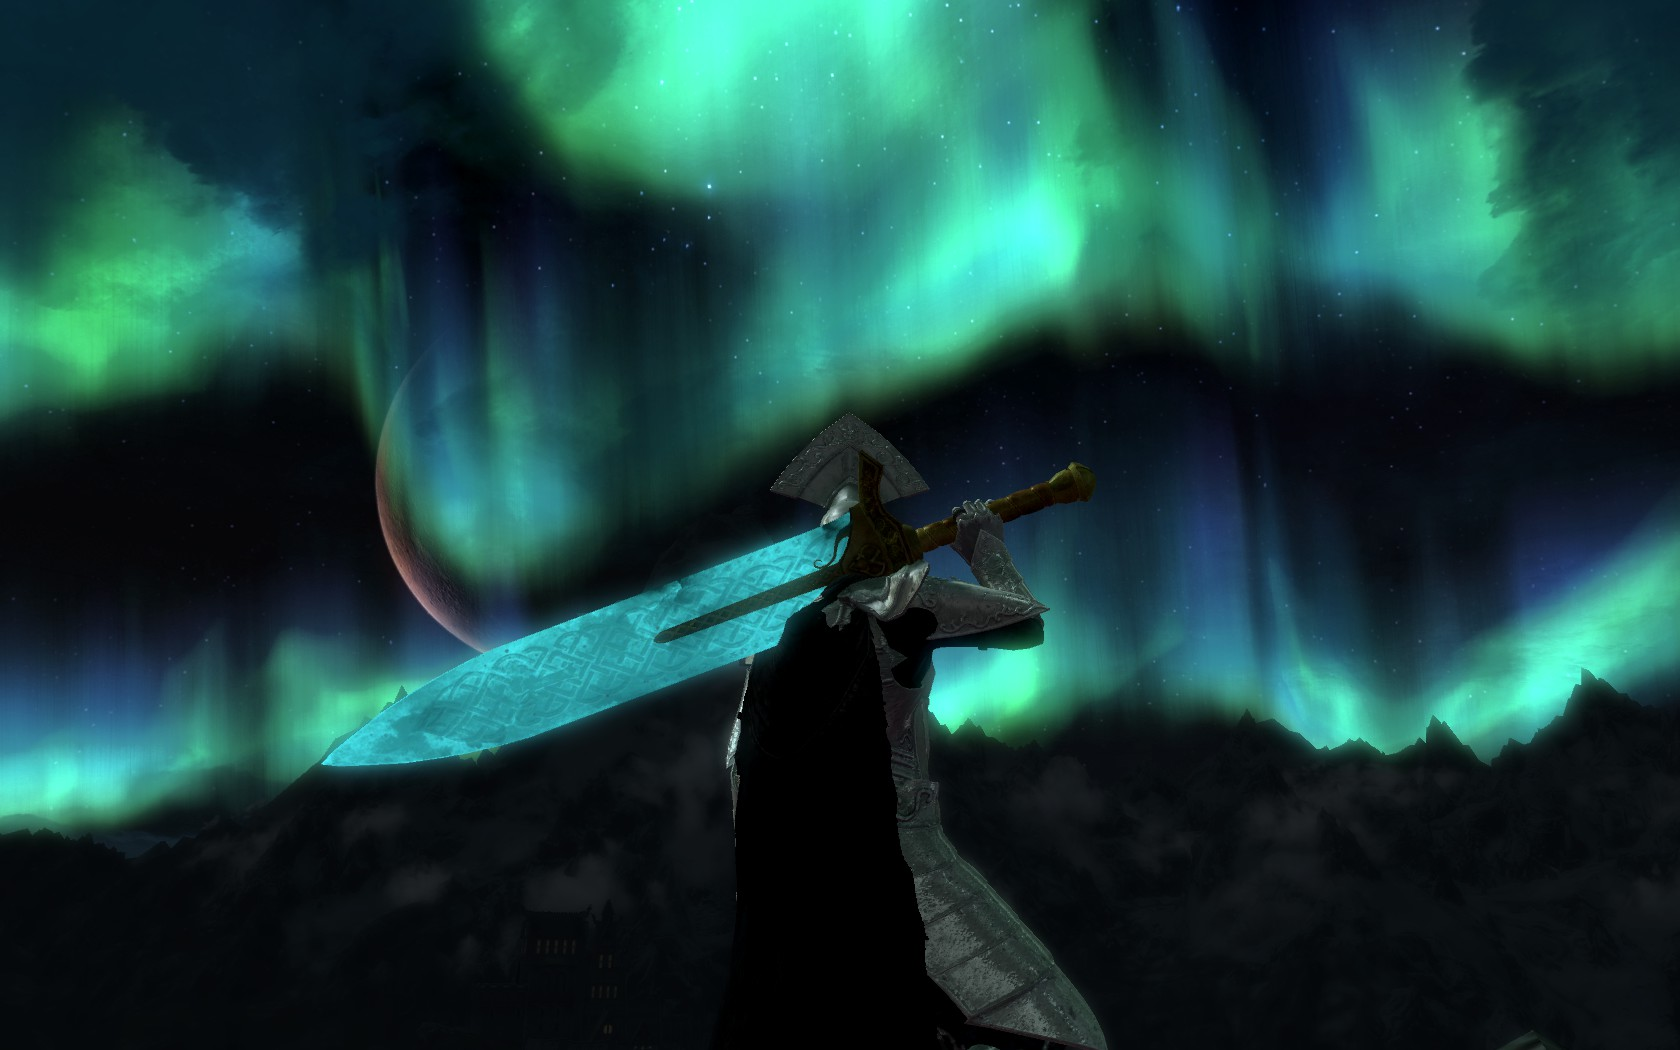 Skyrim Animated Wallpaper Lorkhan Moonlight Greatsword Project With Animated